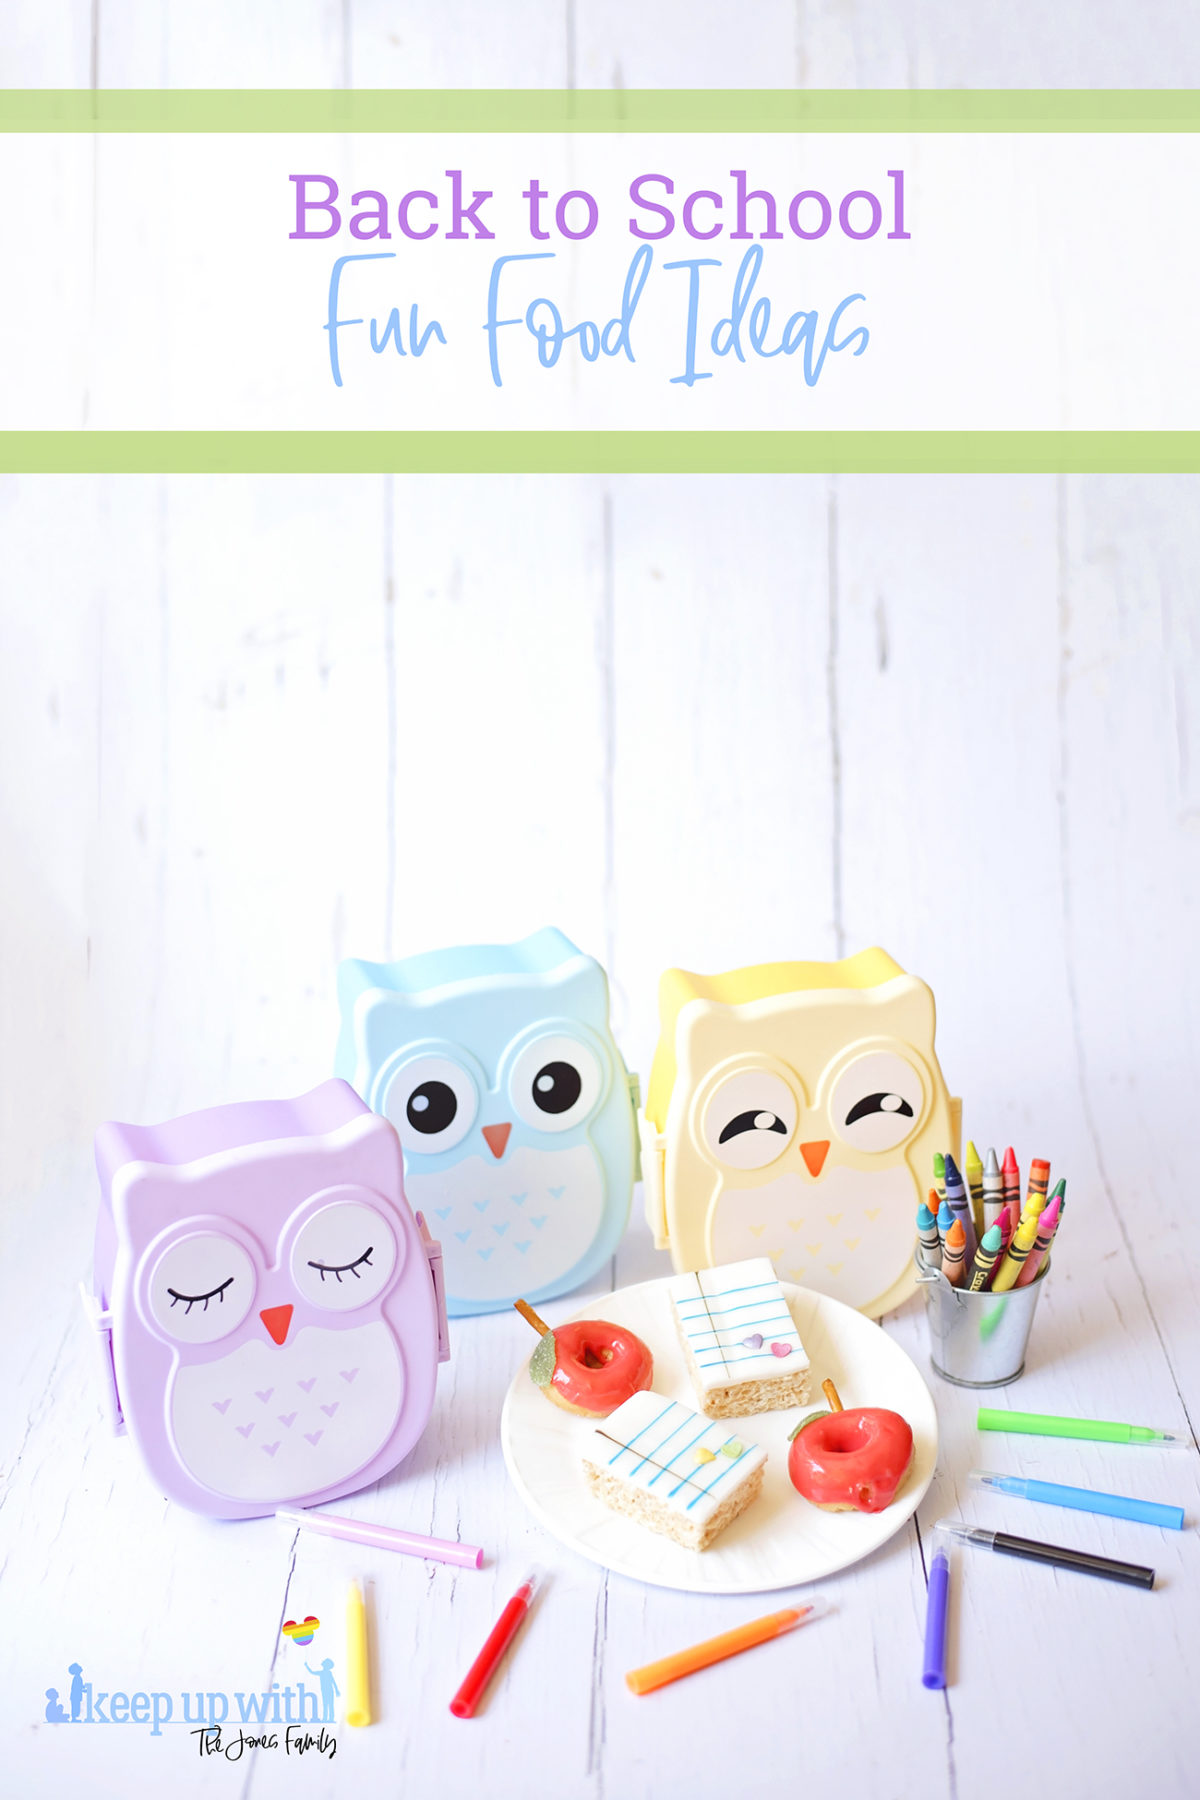 Image shows Back to School Rice Krispie treats and back to school apple shaped doughnuts on a white Vera Wang for Wedgwood plate. There are three pastel coloured owl bento boxes in the background and a small tin bucket of Crayola crayons alongside it. Cake pens surround the plate on the white wooden background. Image by Sara-Jayne from Keep Up With The Jones Family.